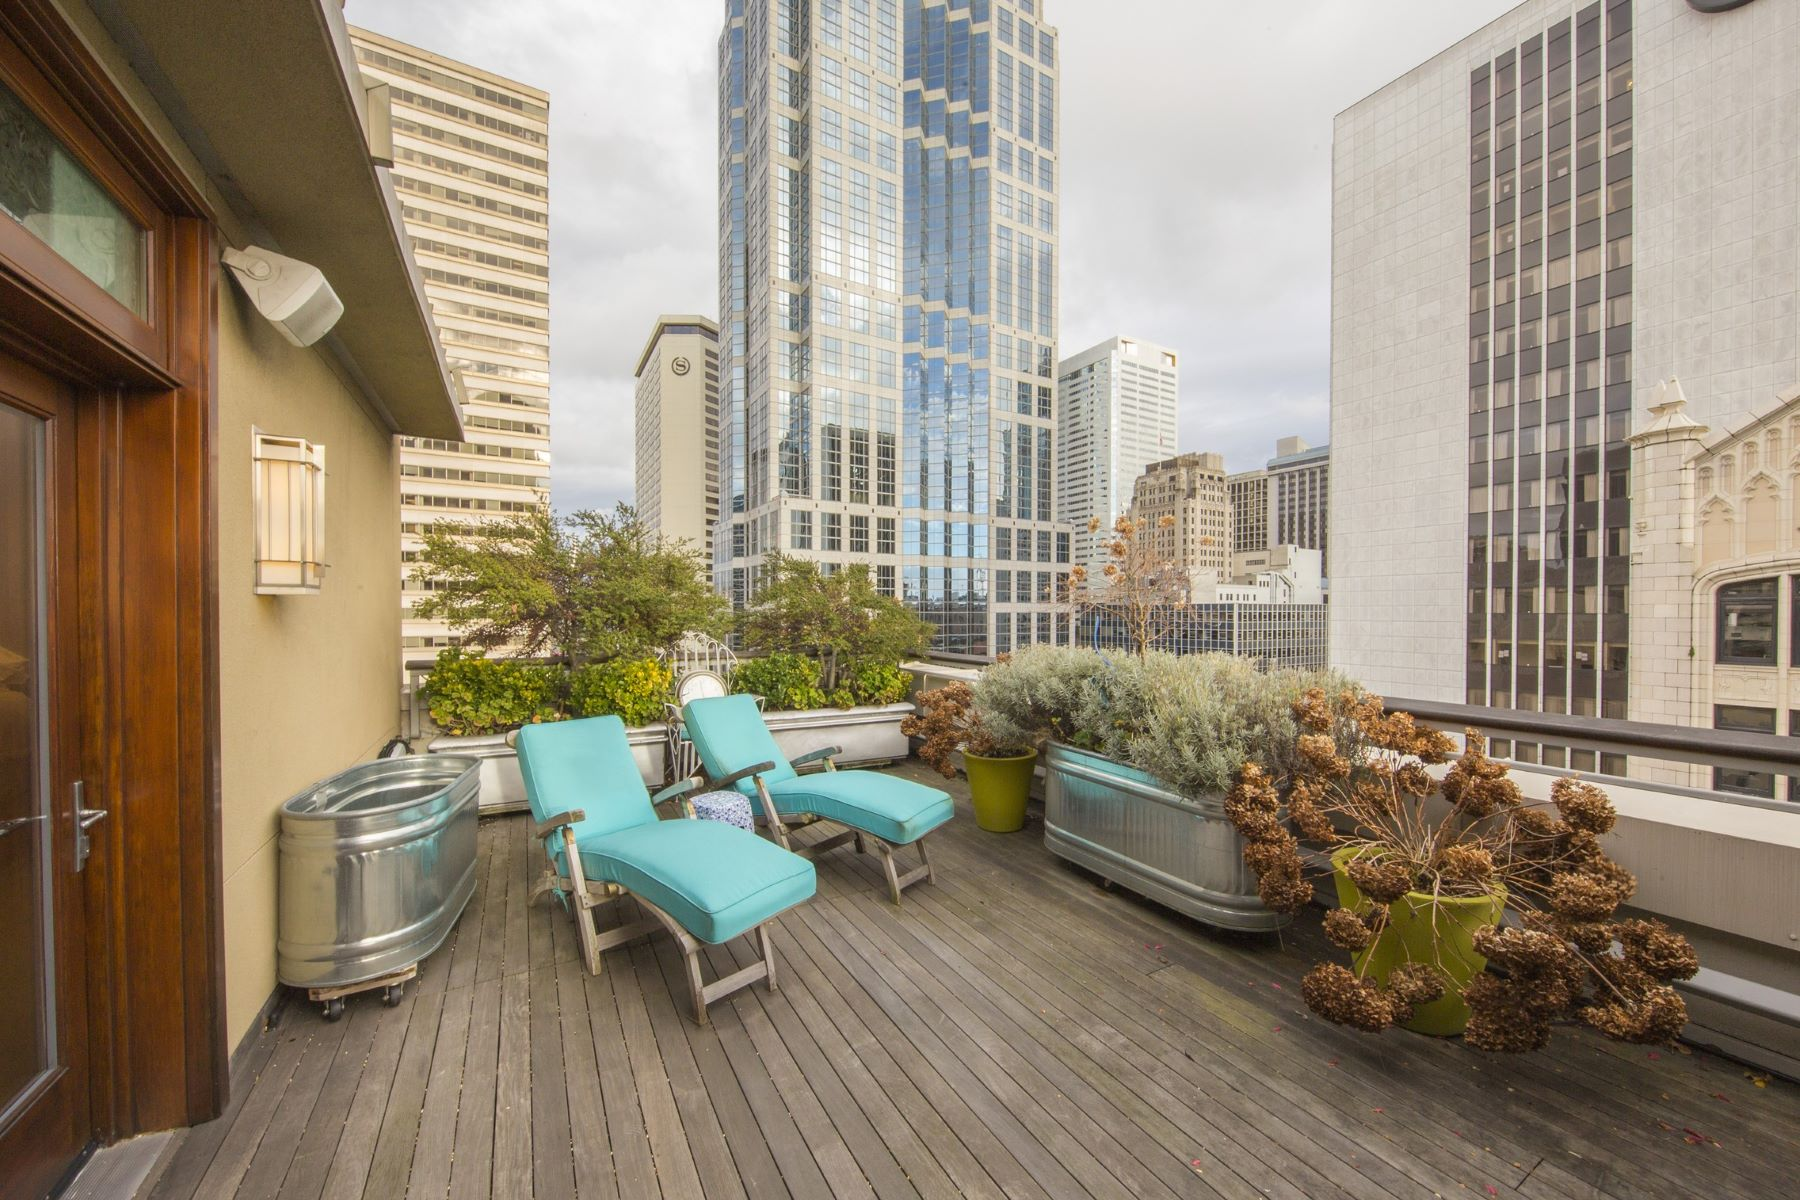 Additional photo for property listing at Historic Penthouse 1500 4th Ave #1101 Seattle, Washington 98101 United States